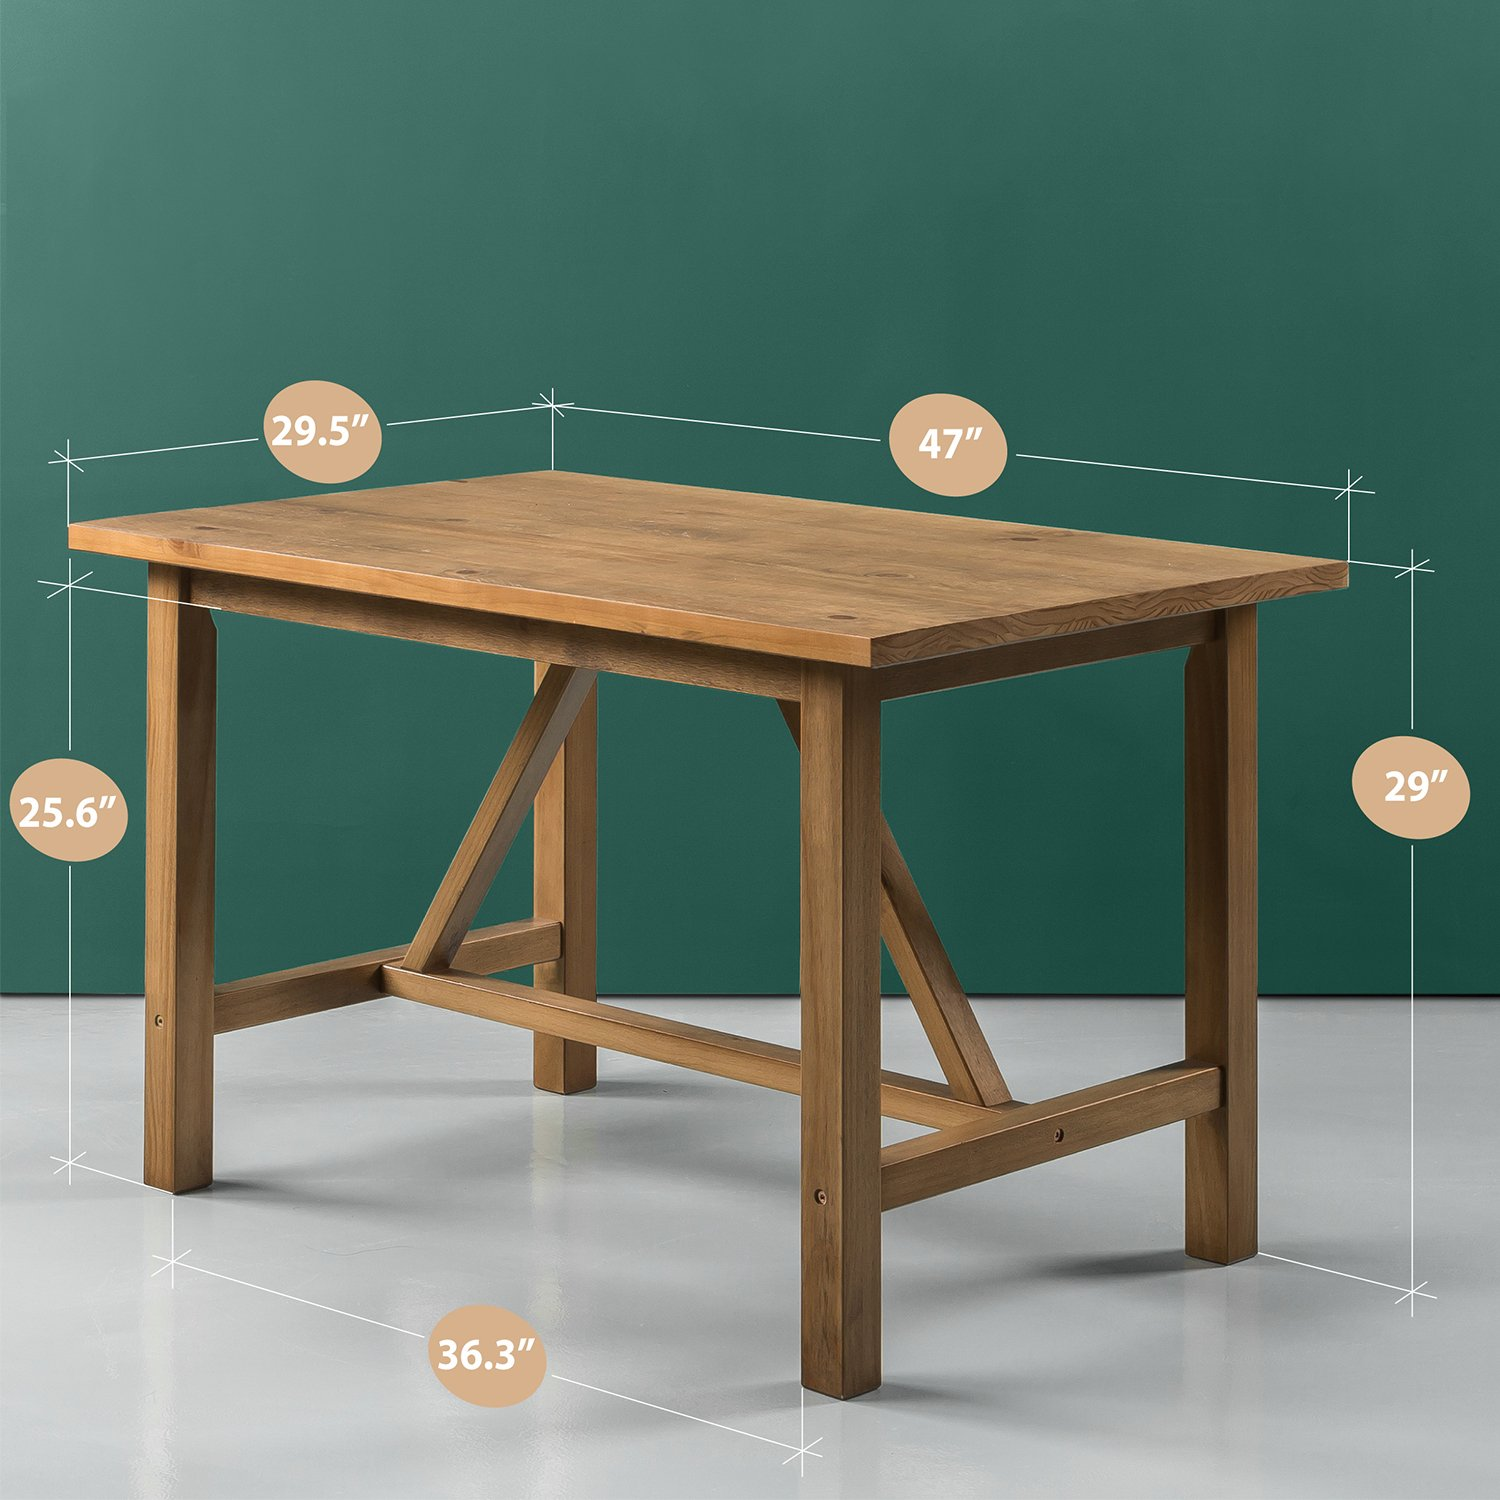 Zinus Brandon Detailed Dining Table in Natural Finish by Zinus (Image #2)